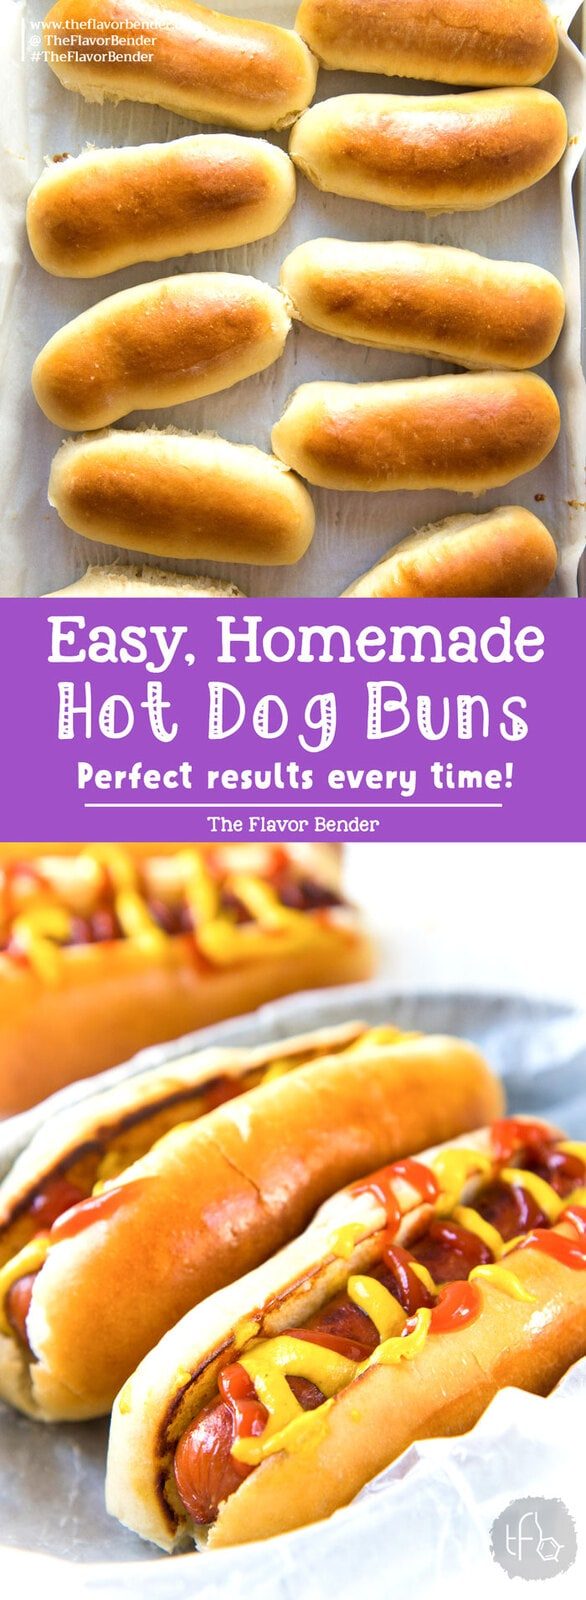 These Easy to make Homemade Hot Dog Buns, are perfectly soft and delicious! This dough is versatile enough to be hot dog buns, subs, or hamburger buns, and absolutely easy to make! #HotDogBuns #BurgerBuns #EasyBreadDough #SummerRecipes